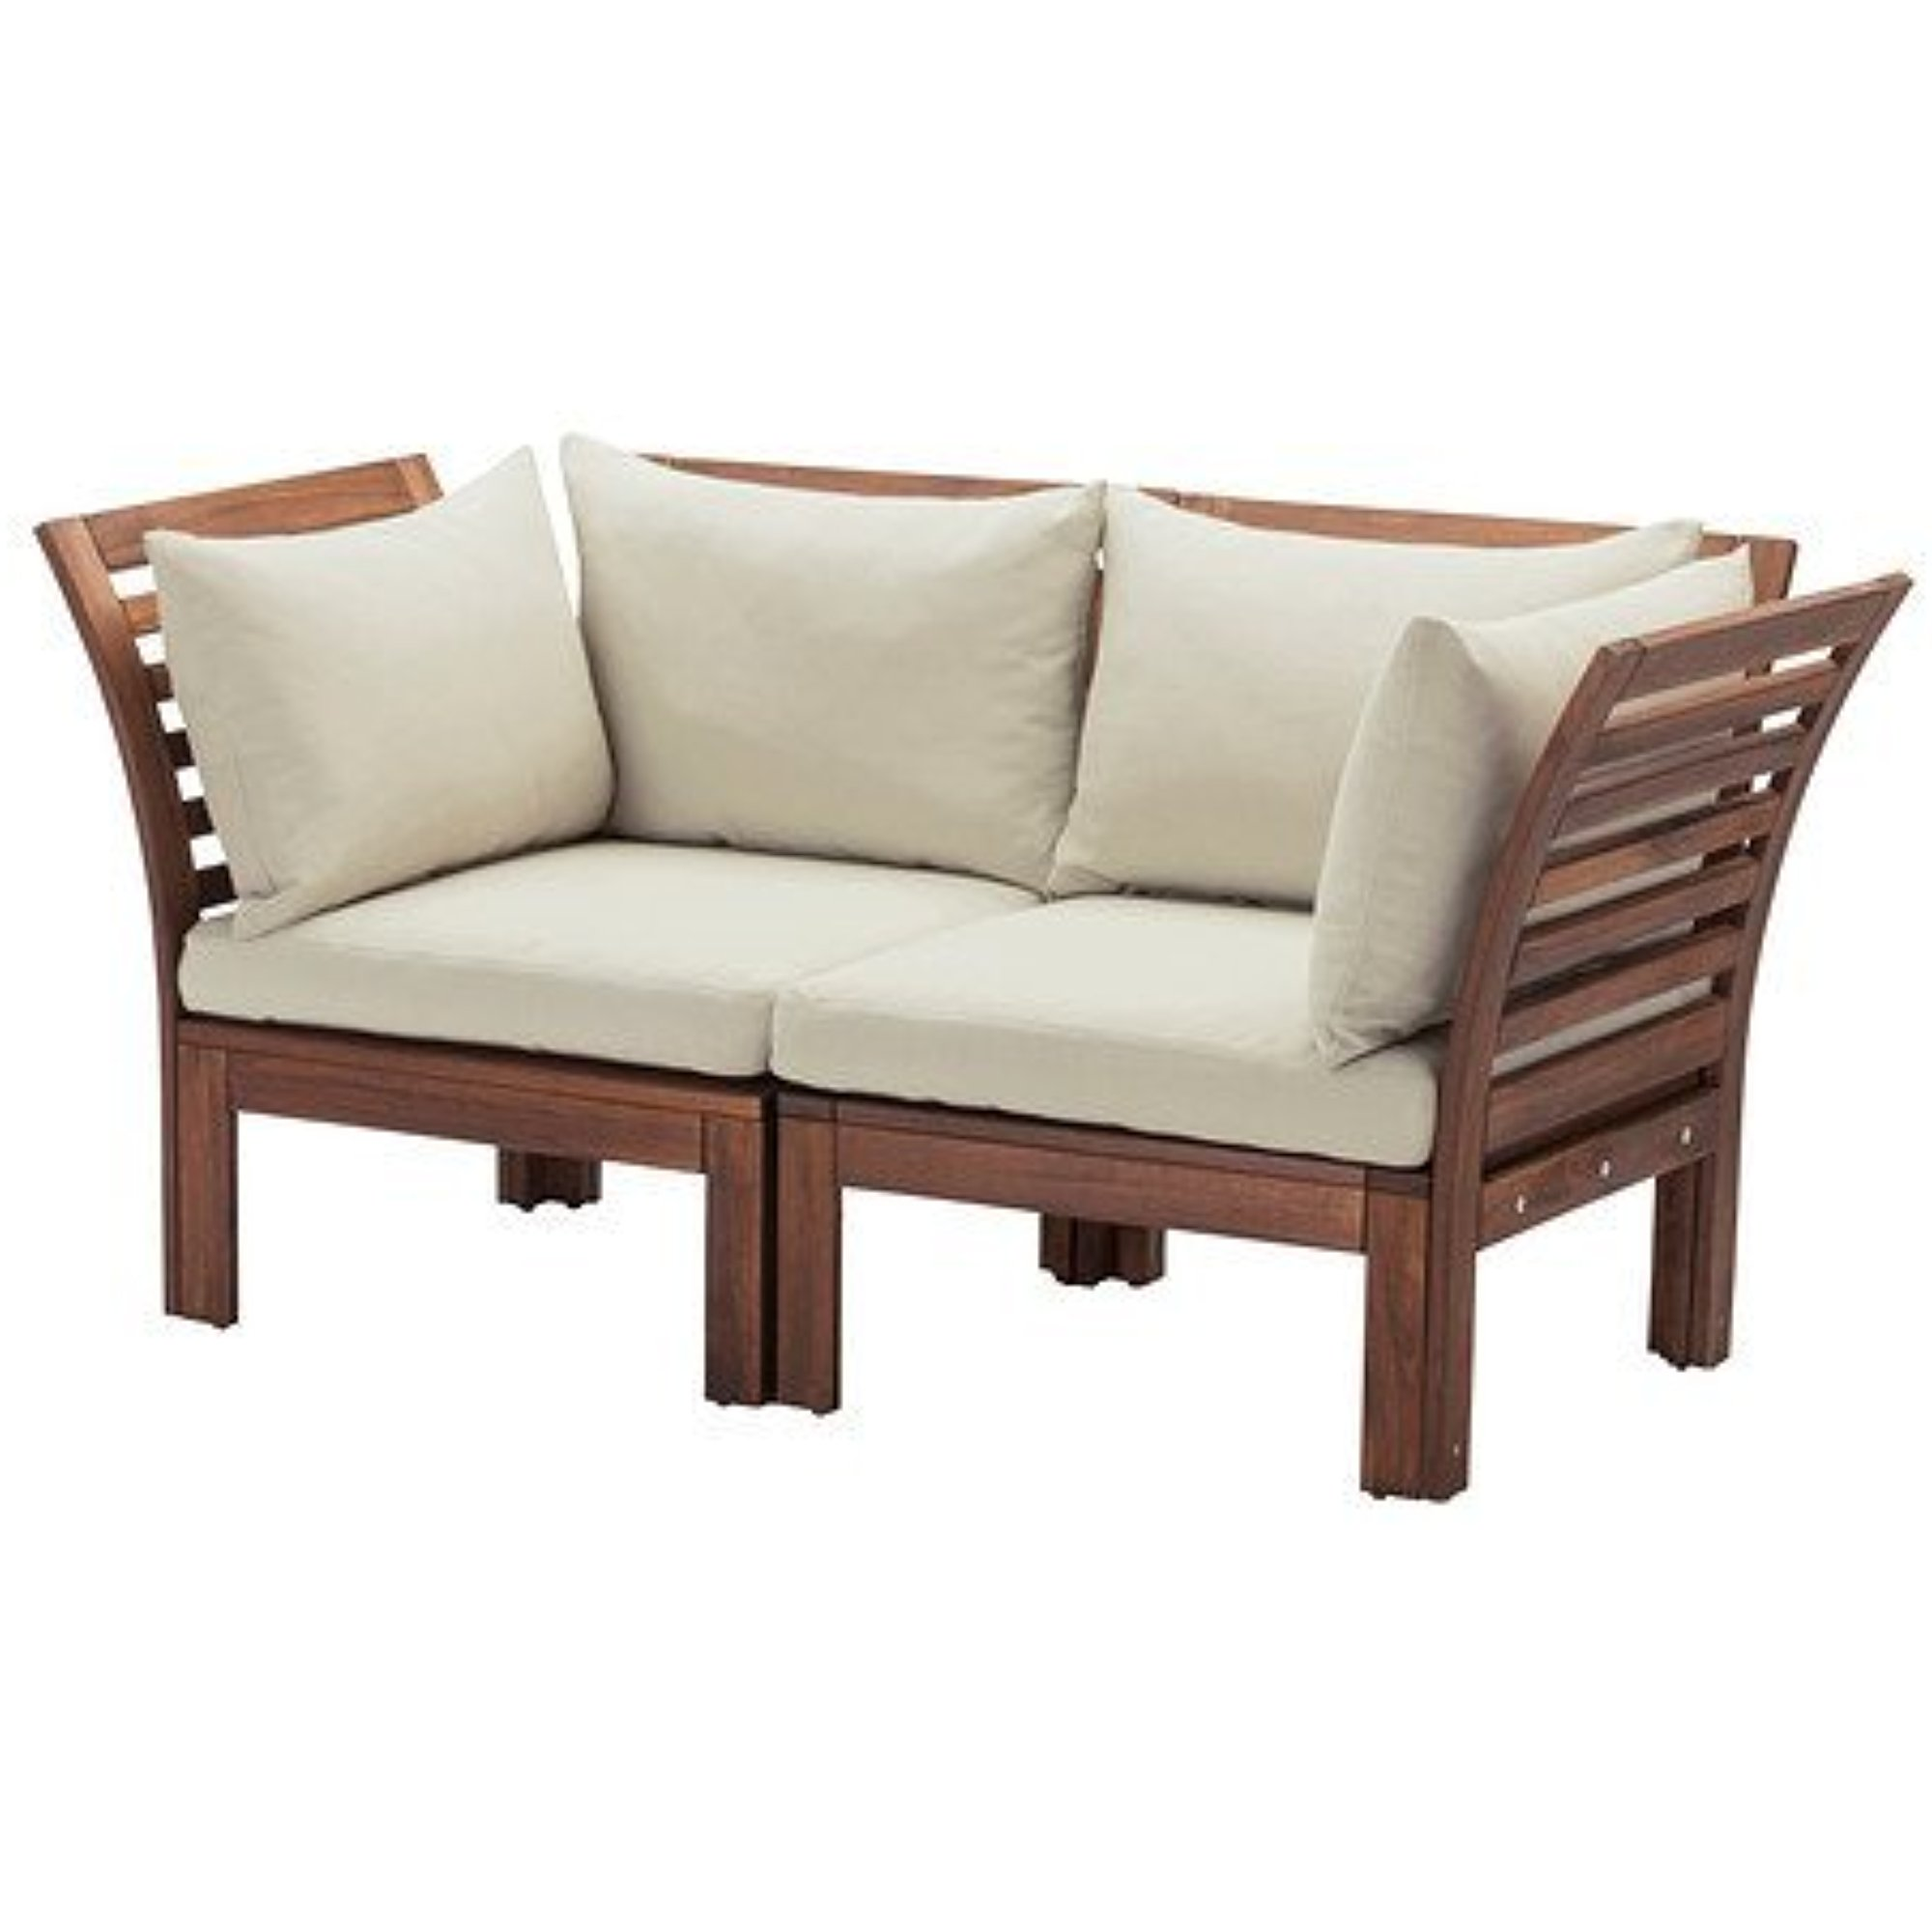 Ikea Loveseat Ikea Loveseat Outdoor Brown Brown Stained Beige 14202 8211 1026